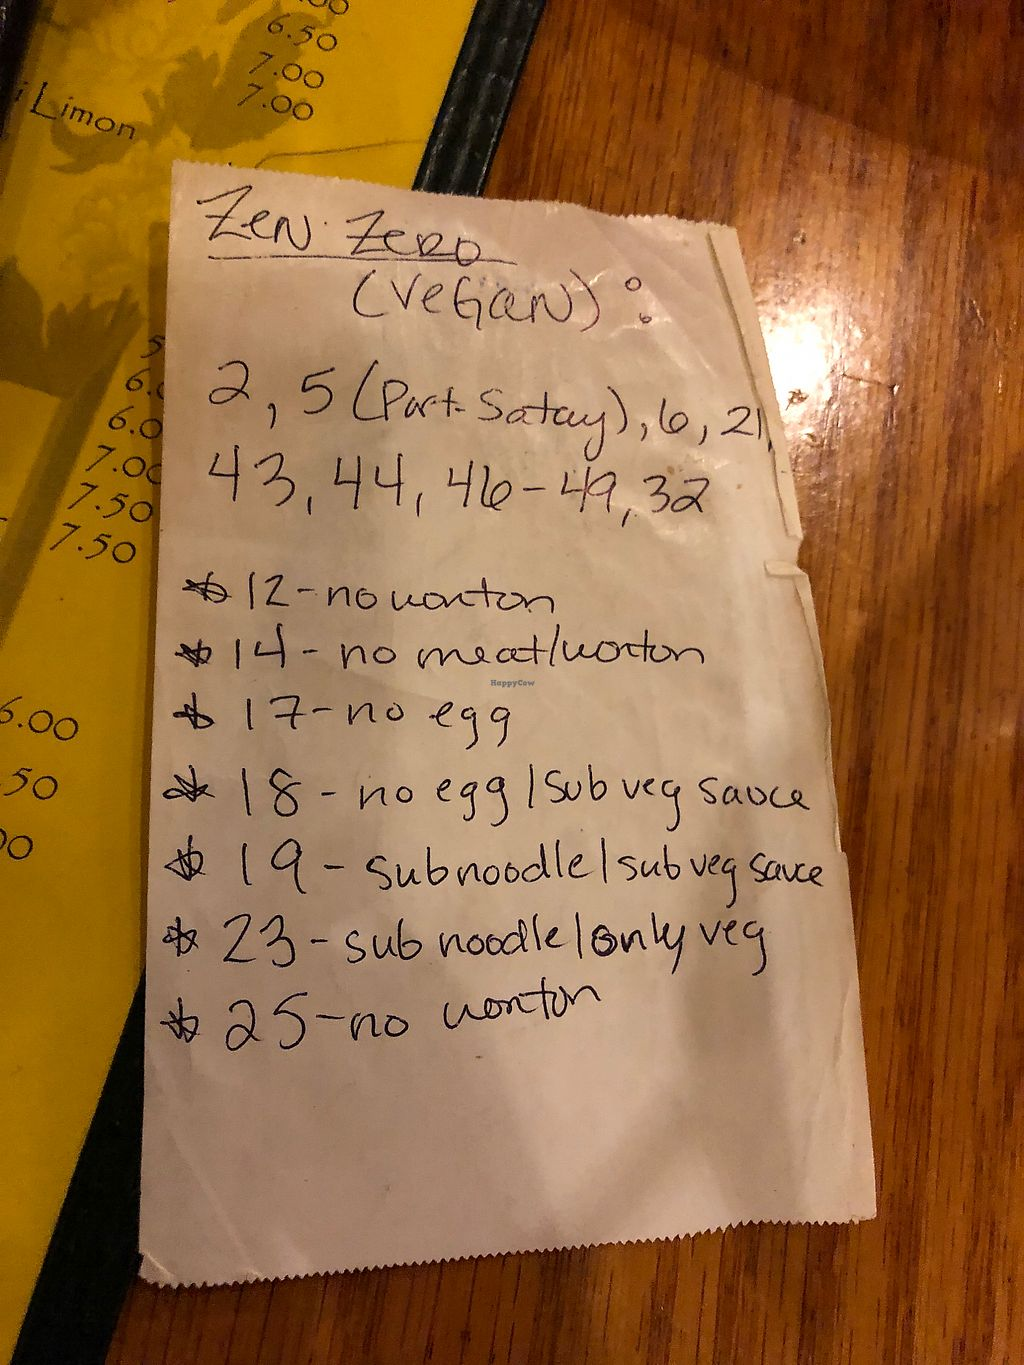 """Photo of Zen Zero  by <a href=""""/members/profile/alexis17"""">alexis17</a> <br/>This is a list from my waitress of the current menu numbers that can be modified to be made vegan (as of feb 2018)  <br/> February 27, 2018  - <a href='/contact/abuse/image/26075/364300'>Report</a>"""